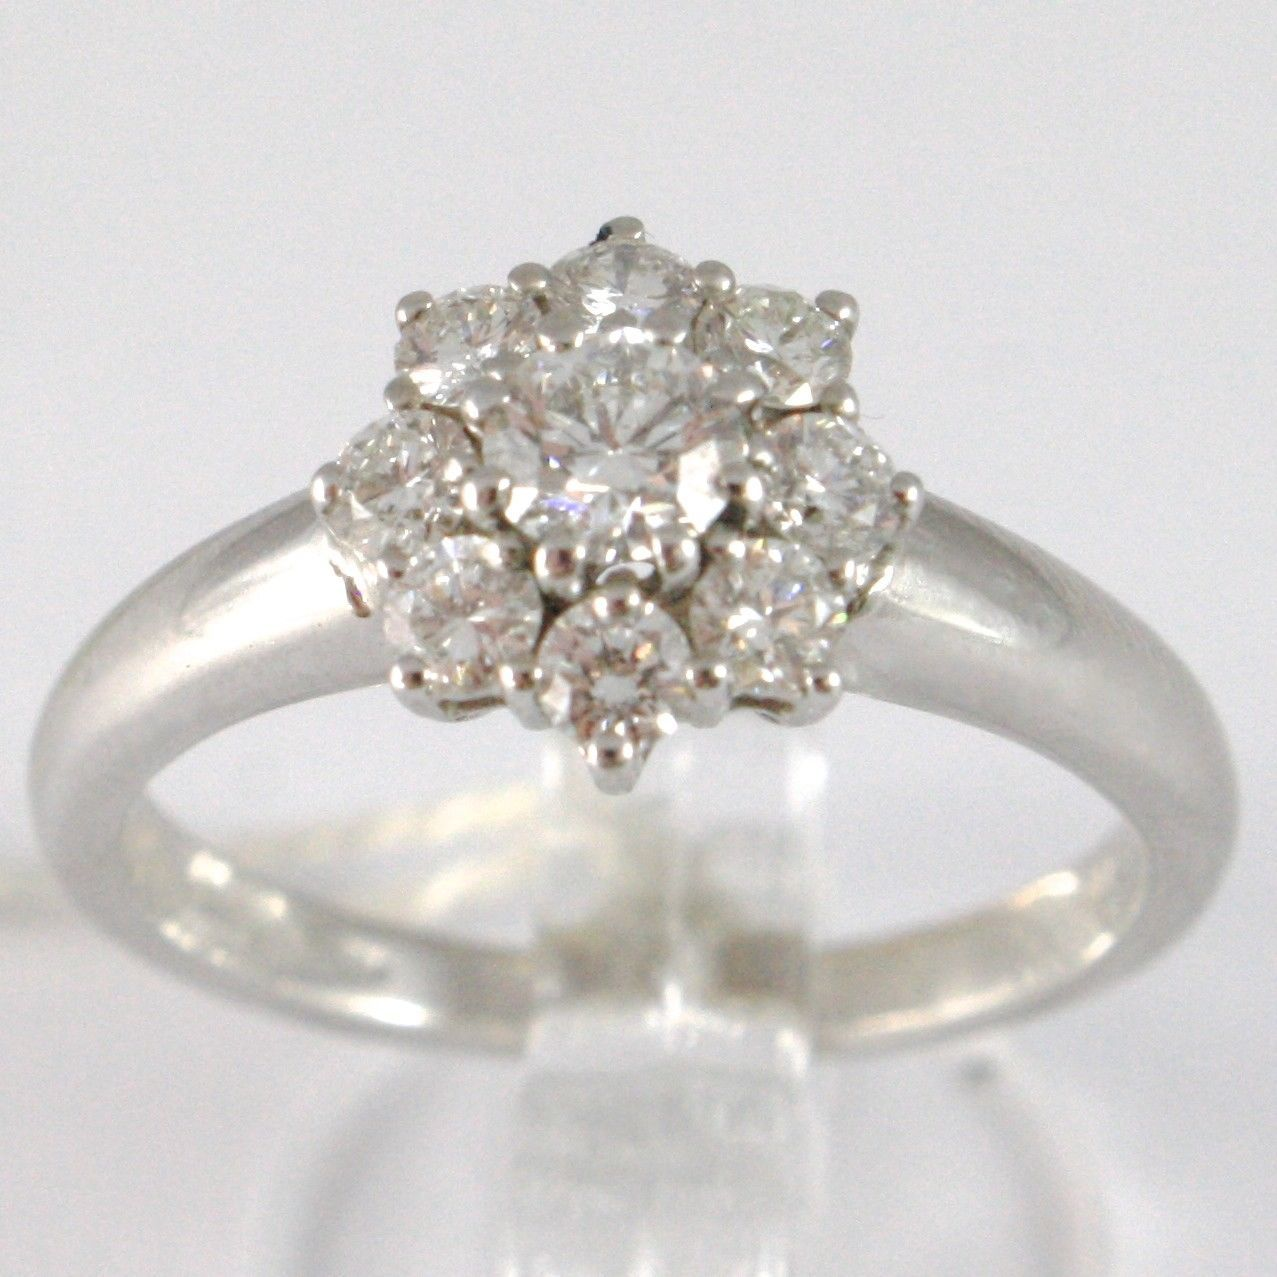 WHITE GOLD RING 750 18K, FLOWER ROSETTA WITH DIAMONDS CARAT TOTAL 0.77